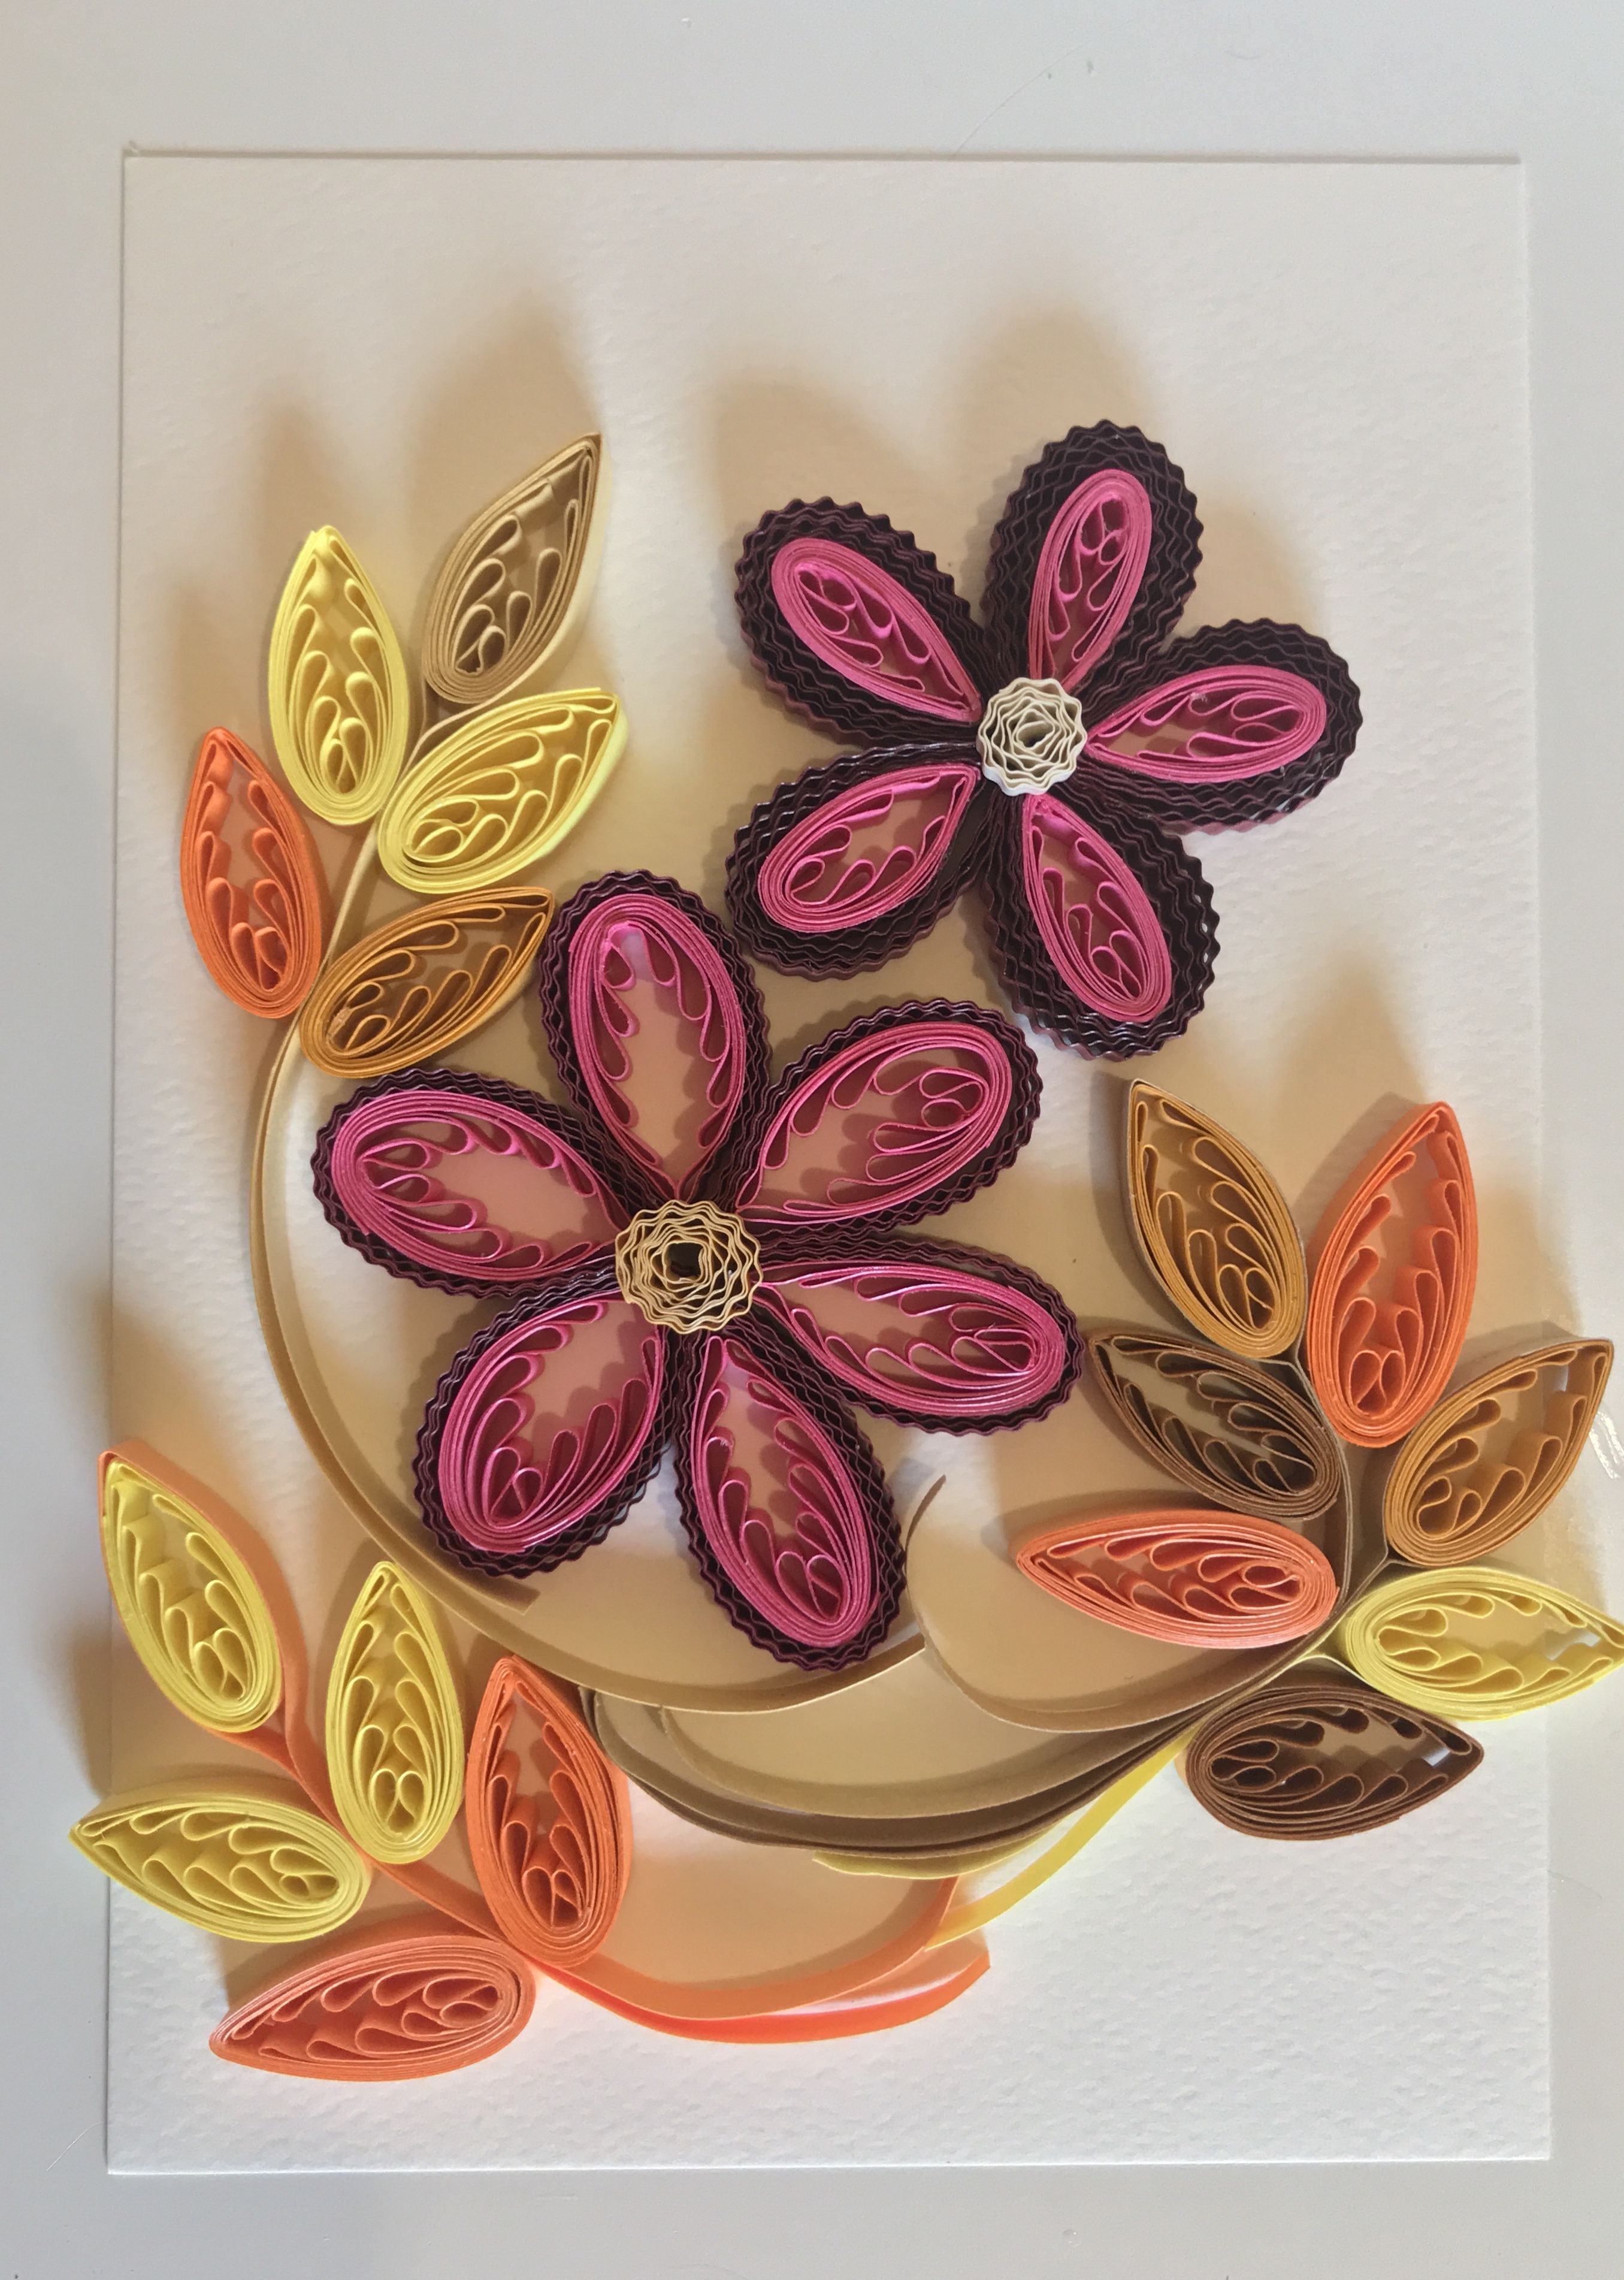 Pin By Gramariche On Flores Quilling Quilling Cards Quilling Art